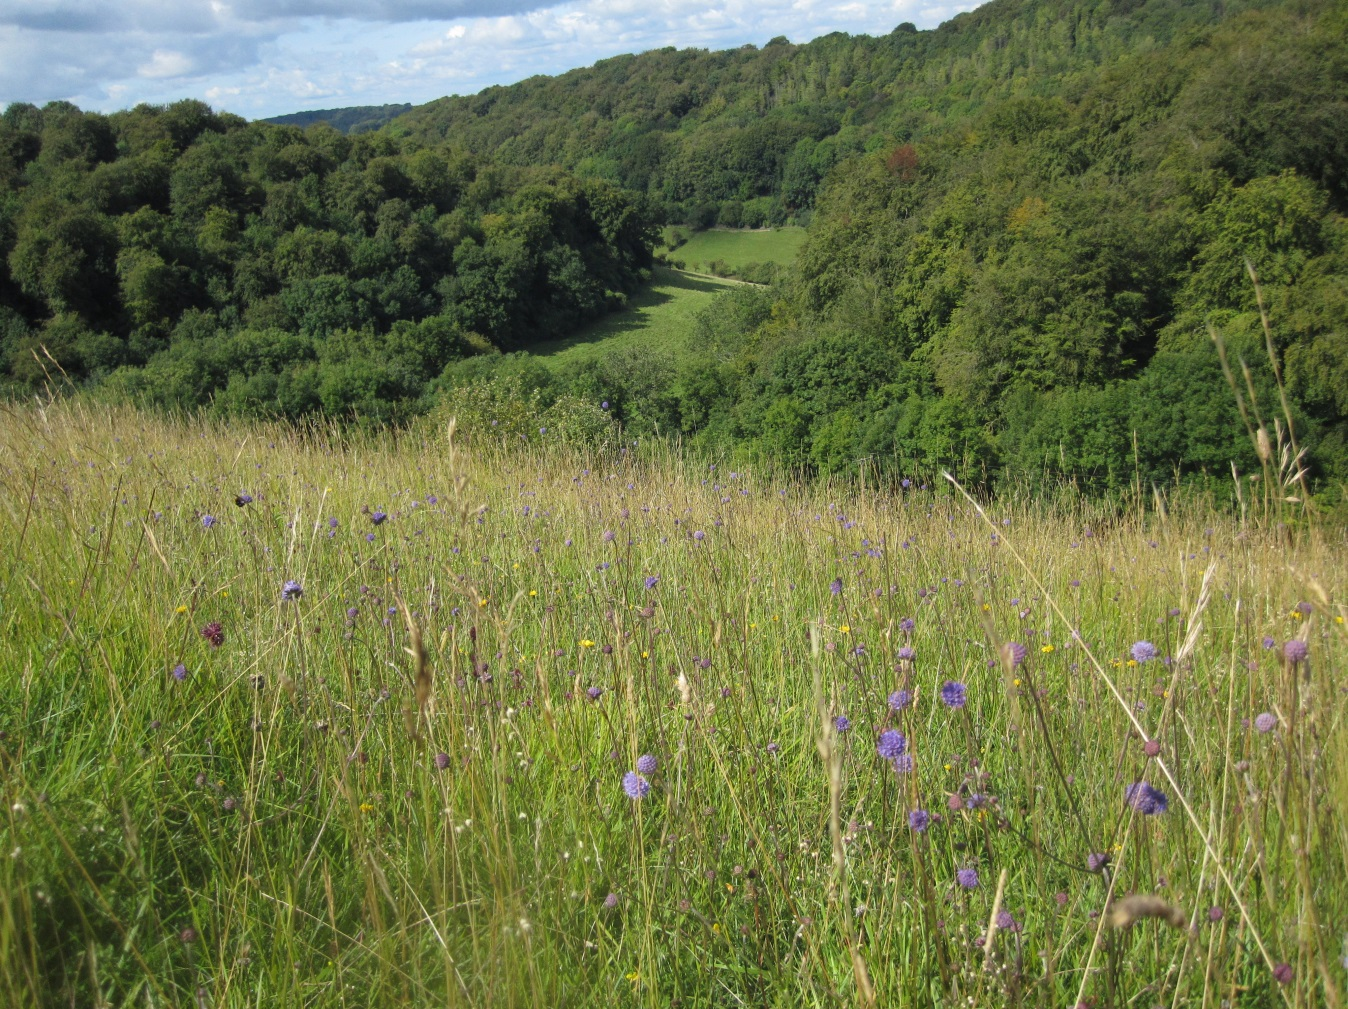 View from Rough Bank looking towards the Slad Valley, with Devil's Bit Scabious in the foreground